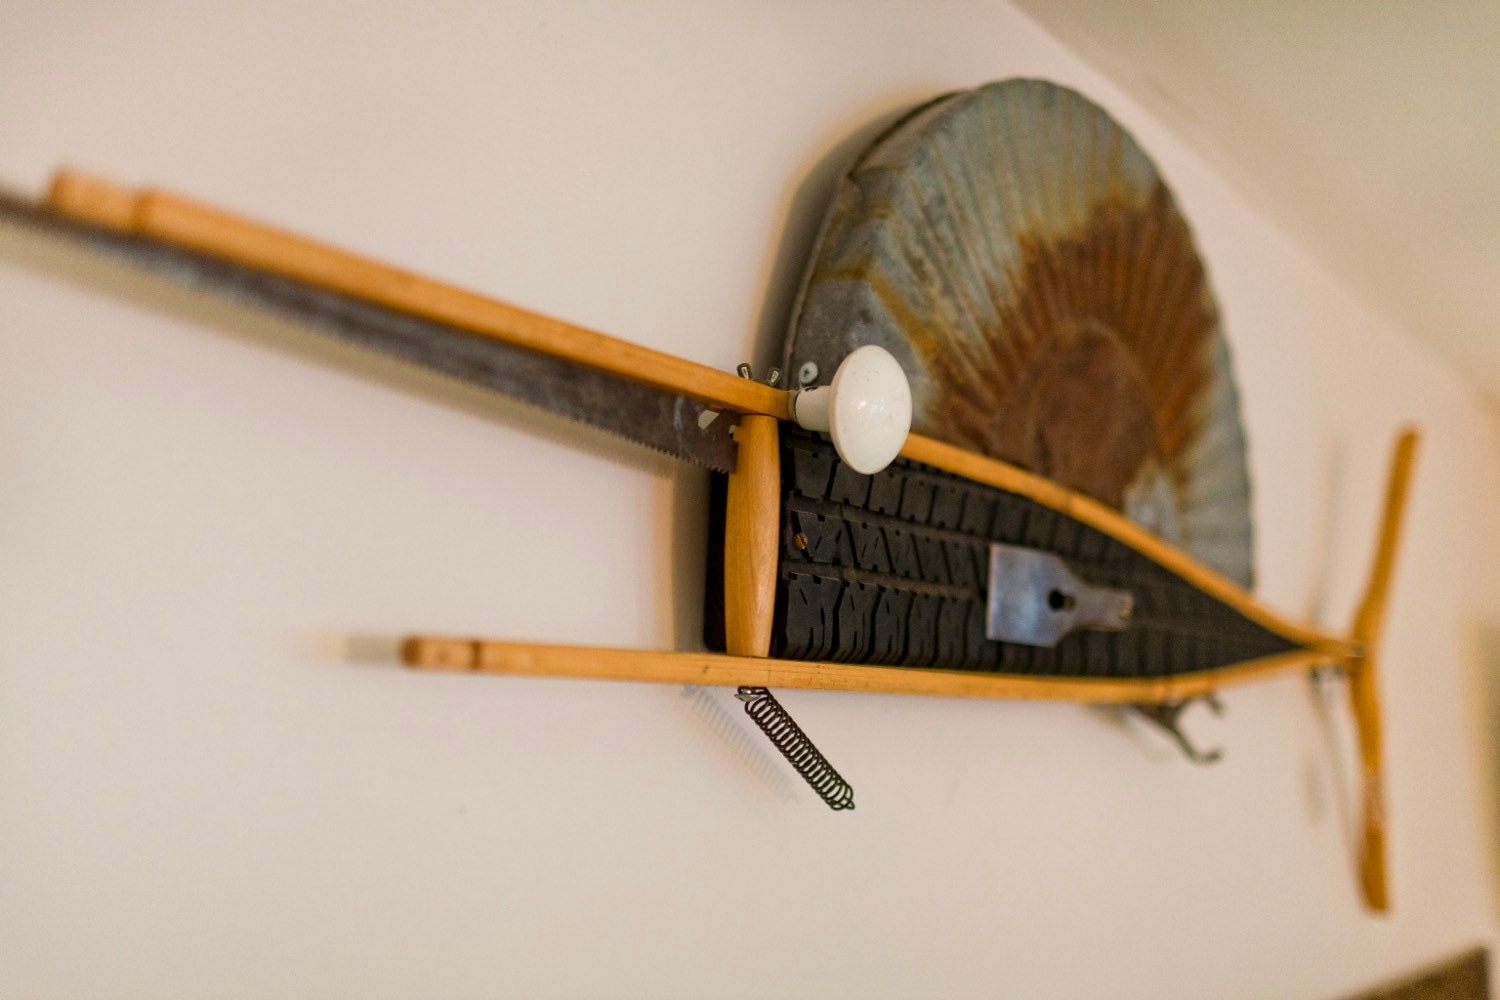 The Sailfish Fish Art Made From Repurposed Crutch Tire